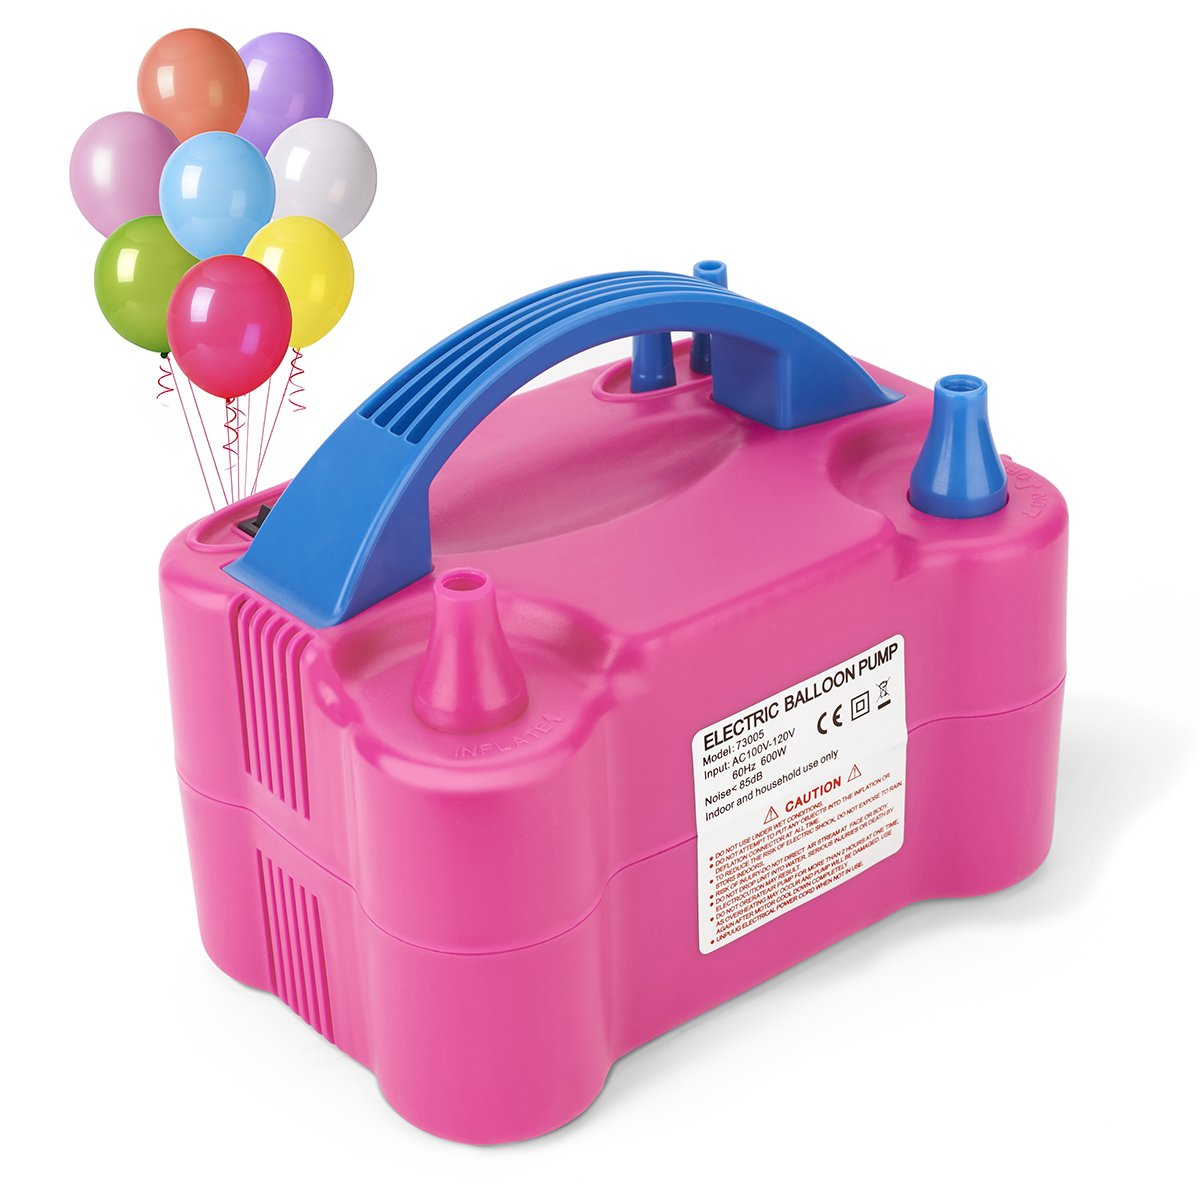 MESHA Electric Balloon Pump Portable Latex Balloon Inflator with Manual and Automatic Modes, Air Pump for Balloons 8987654613579